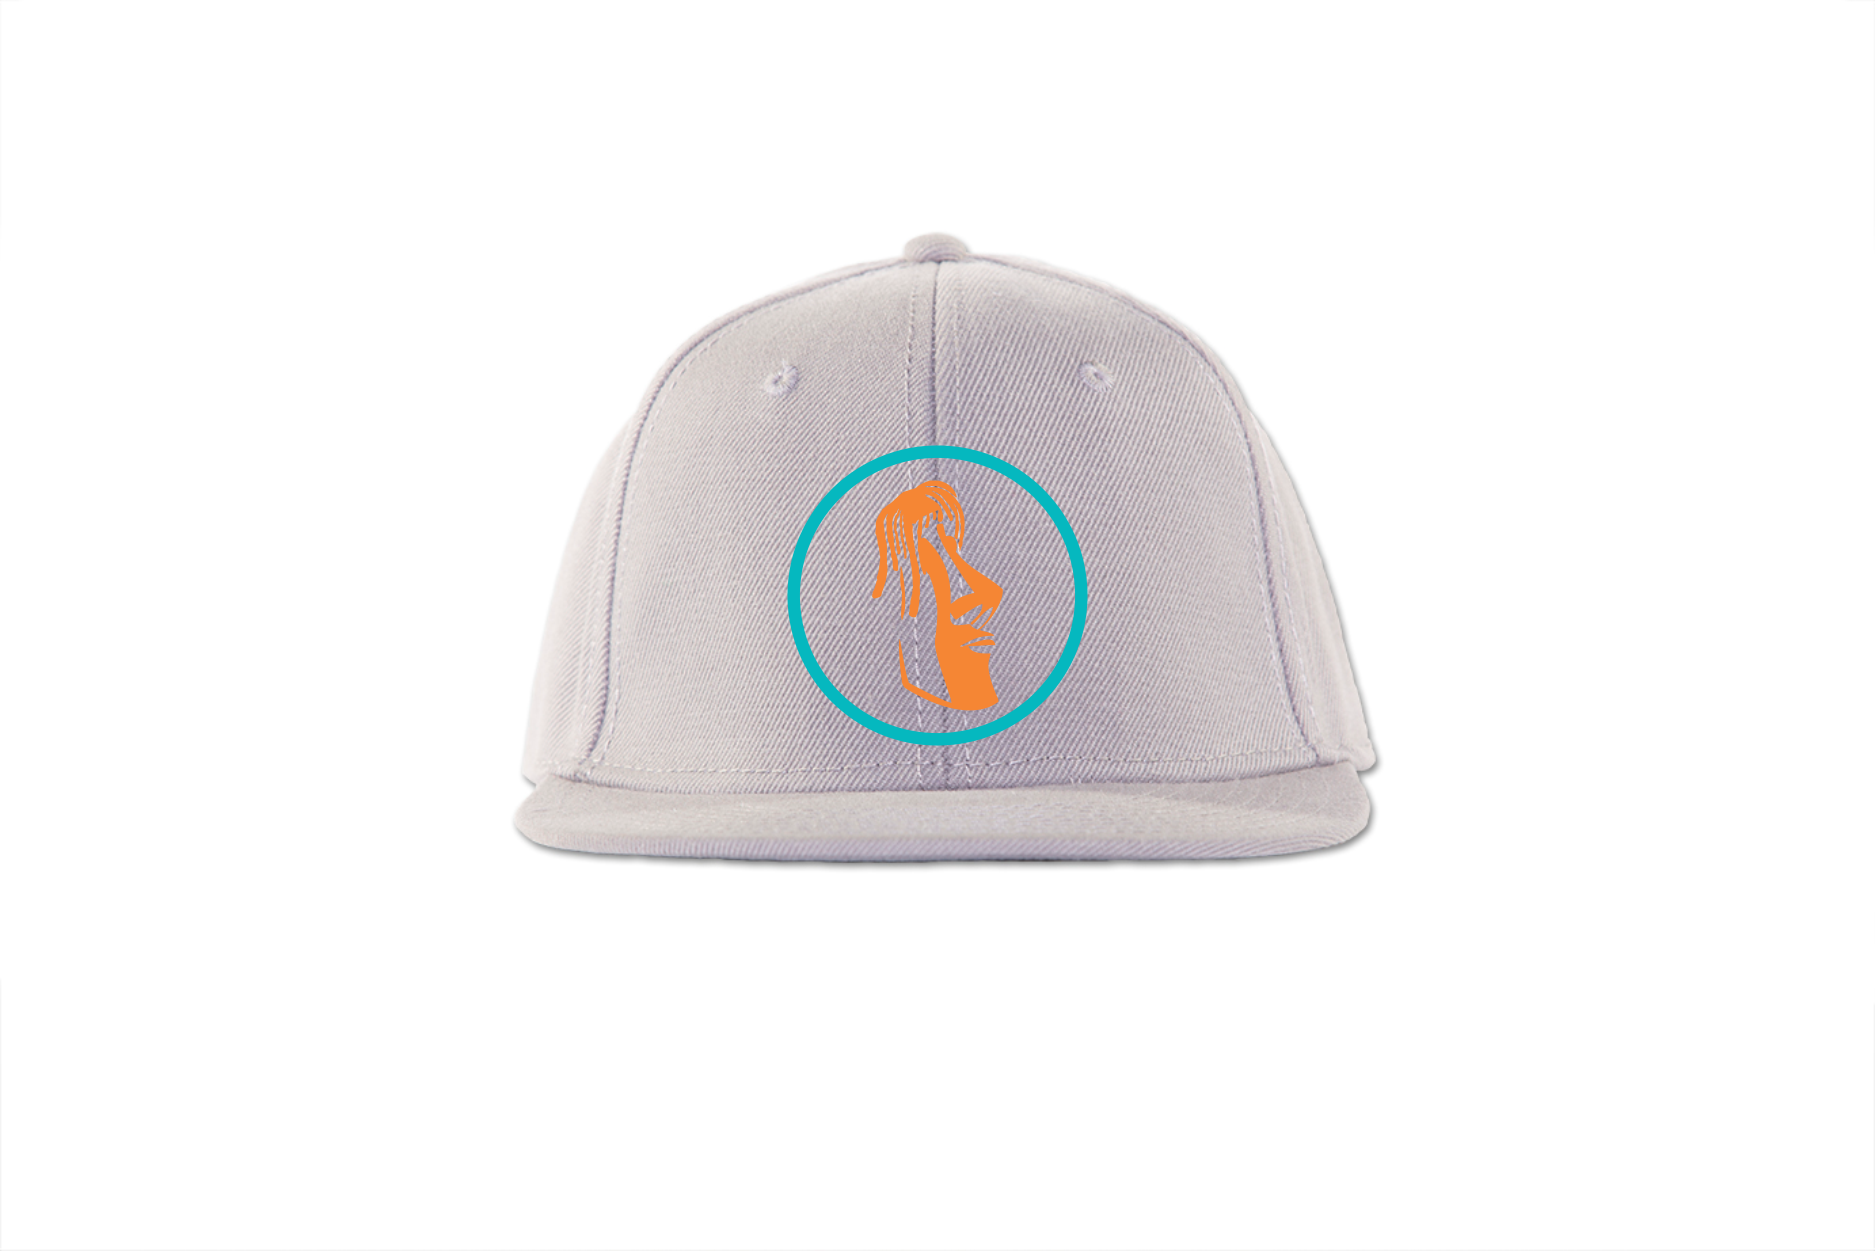 buy popular 18e88 5cd2d FRESH CATCH RASTA MOAI STAMP (HAT IS WHITE) MIAMI DOLPHINS HAT from fresh  catch music merch store